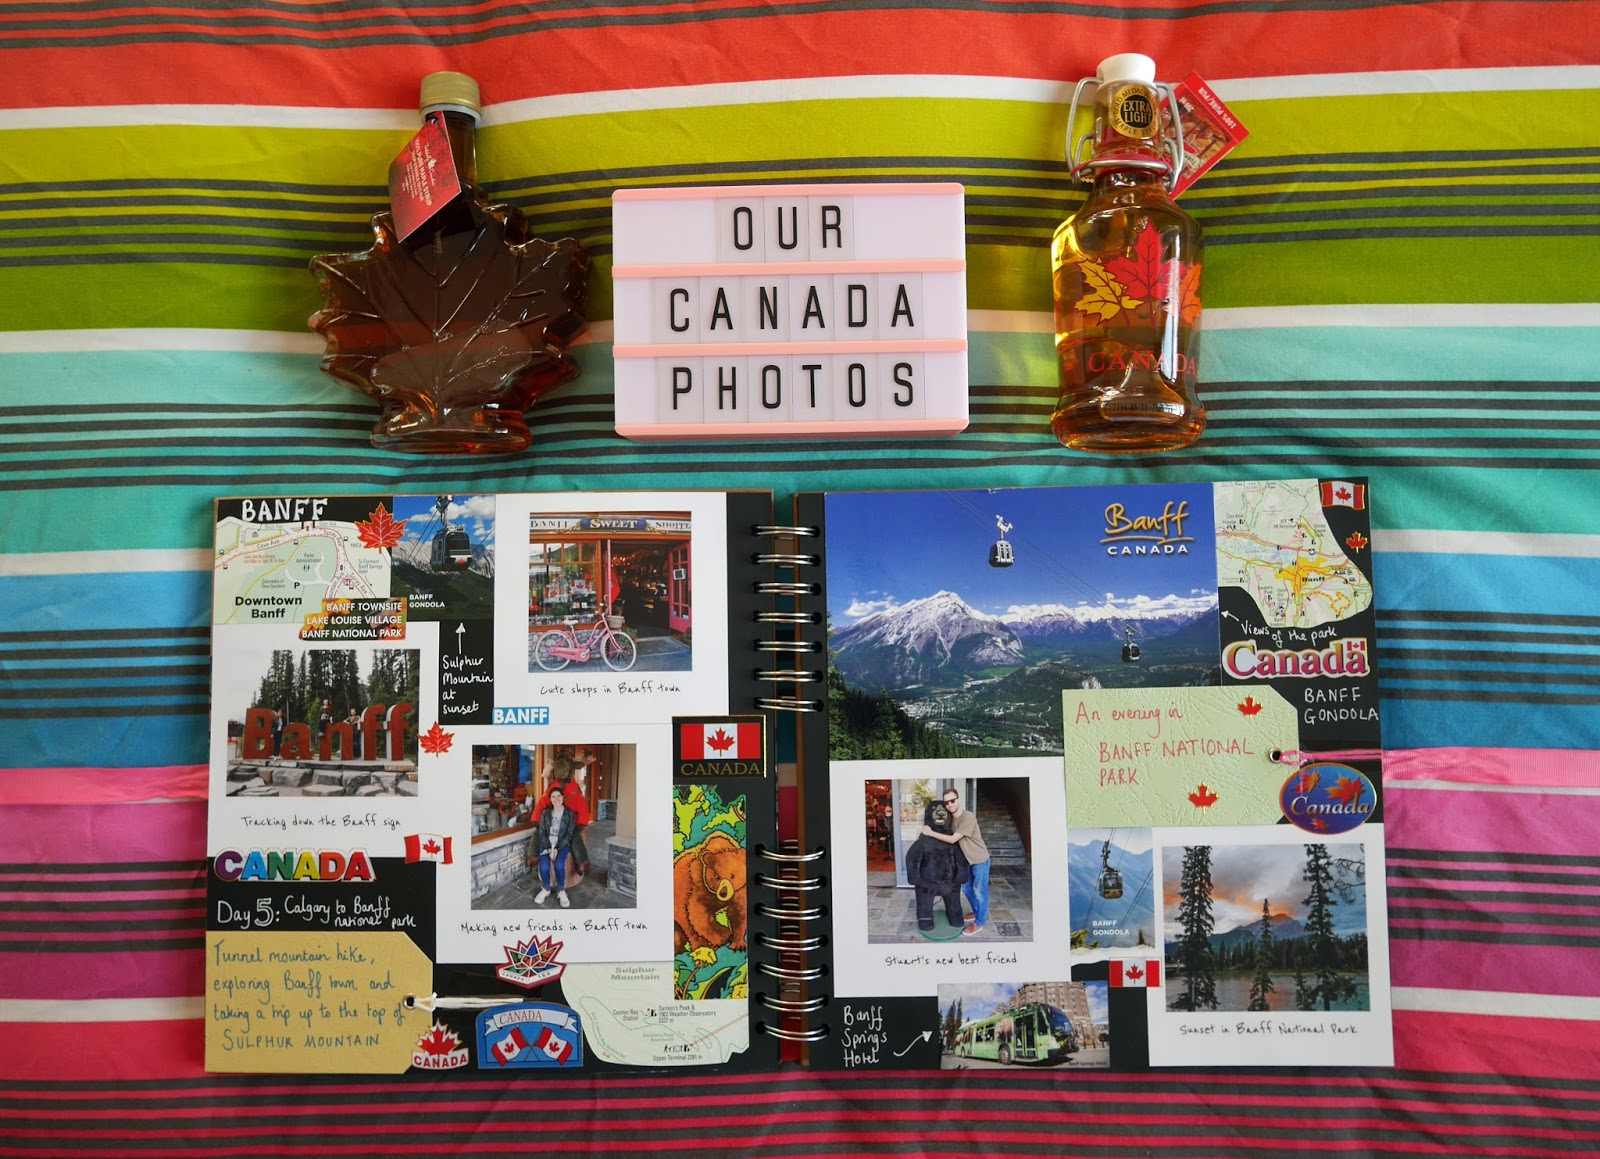 Canada travel scrapbook pages 5-6 (Banff National Park) featuring Printiki's retro prints